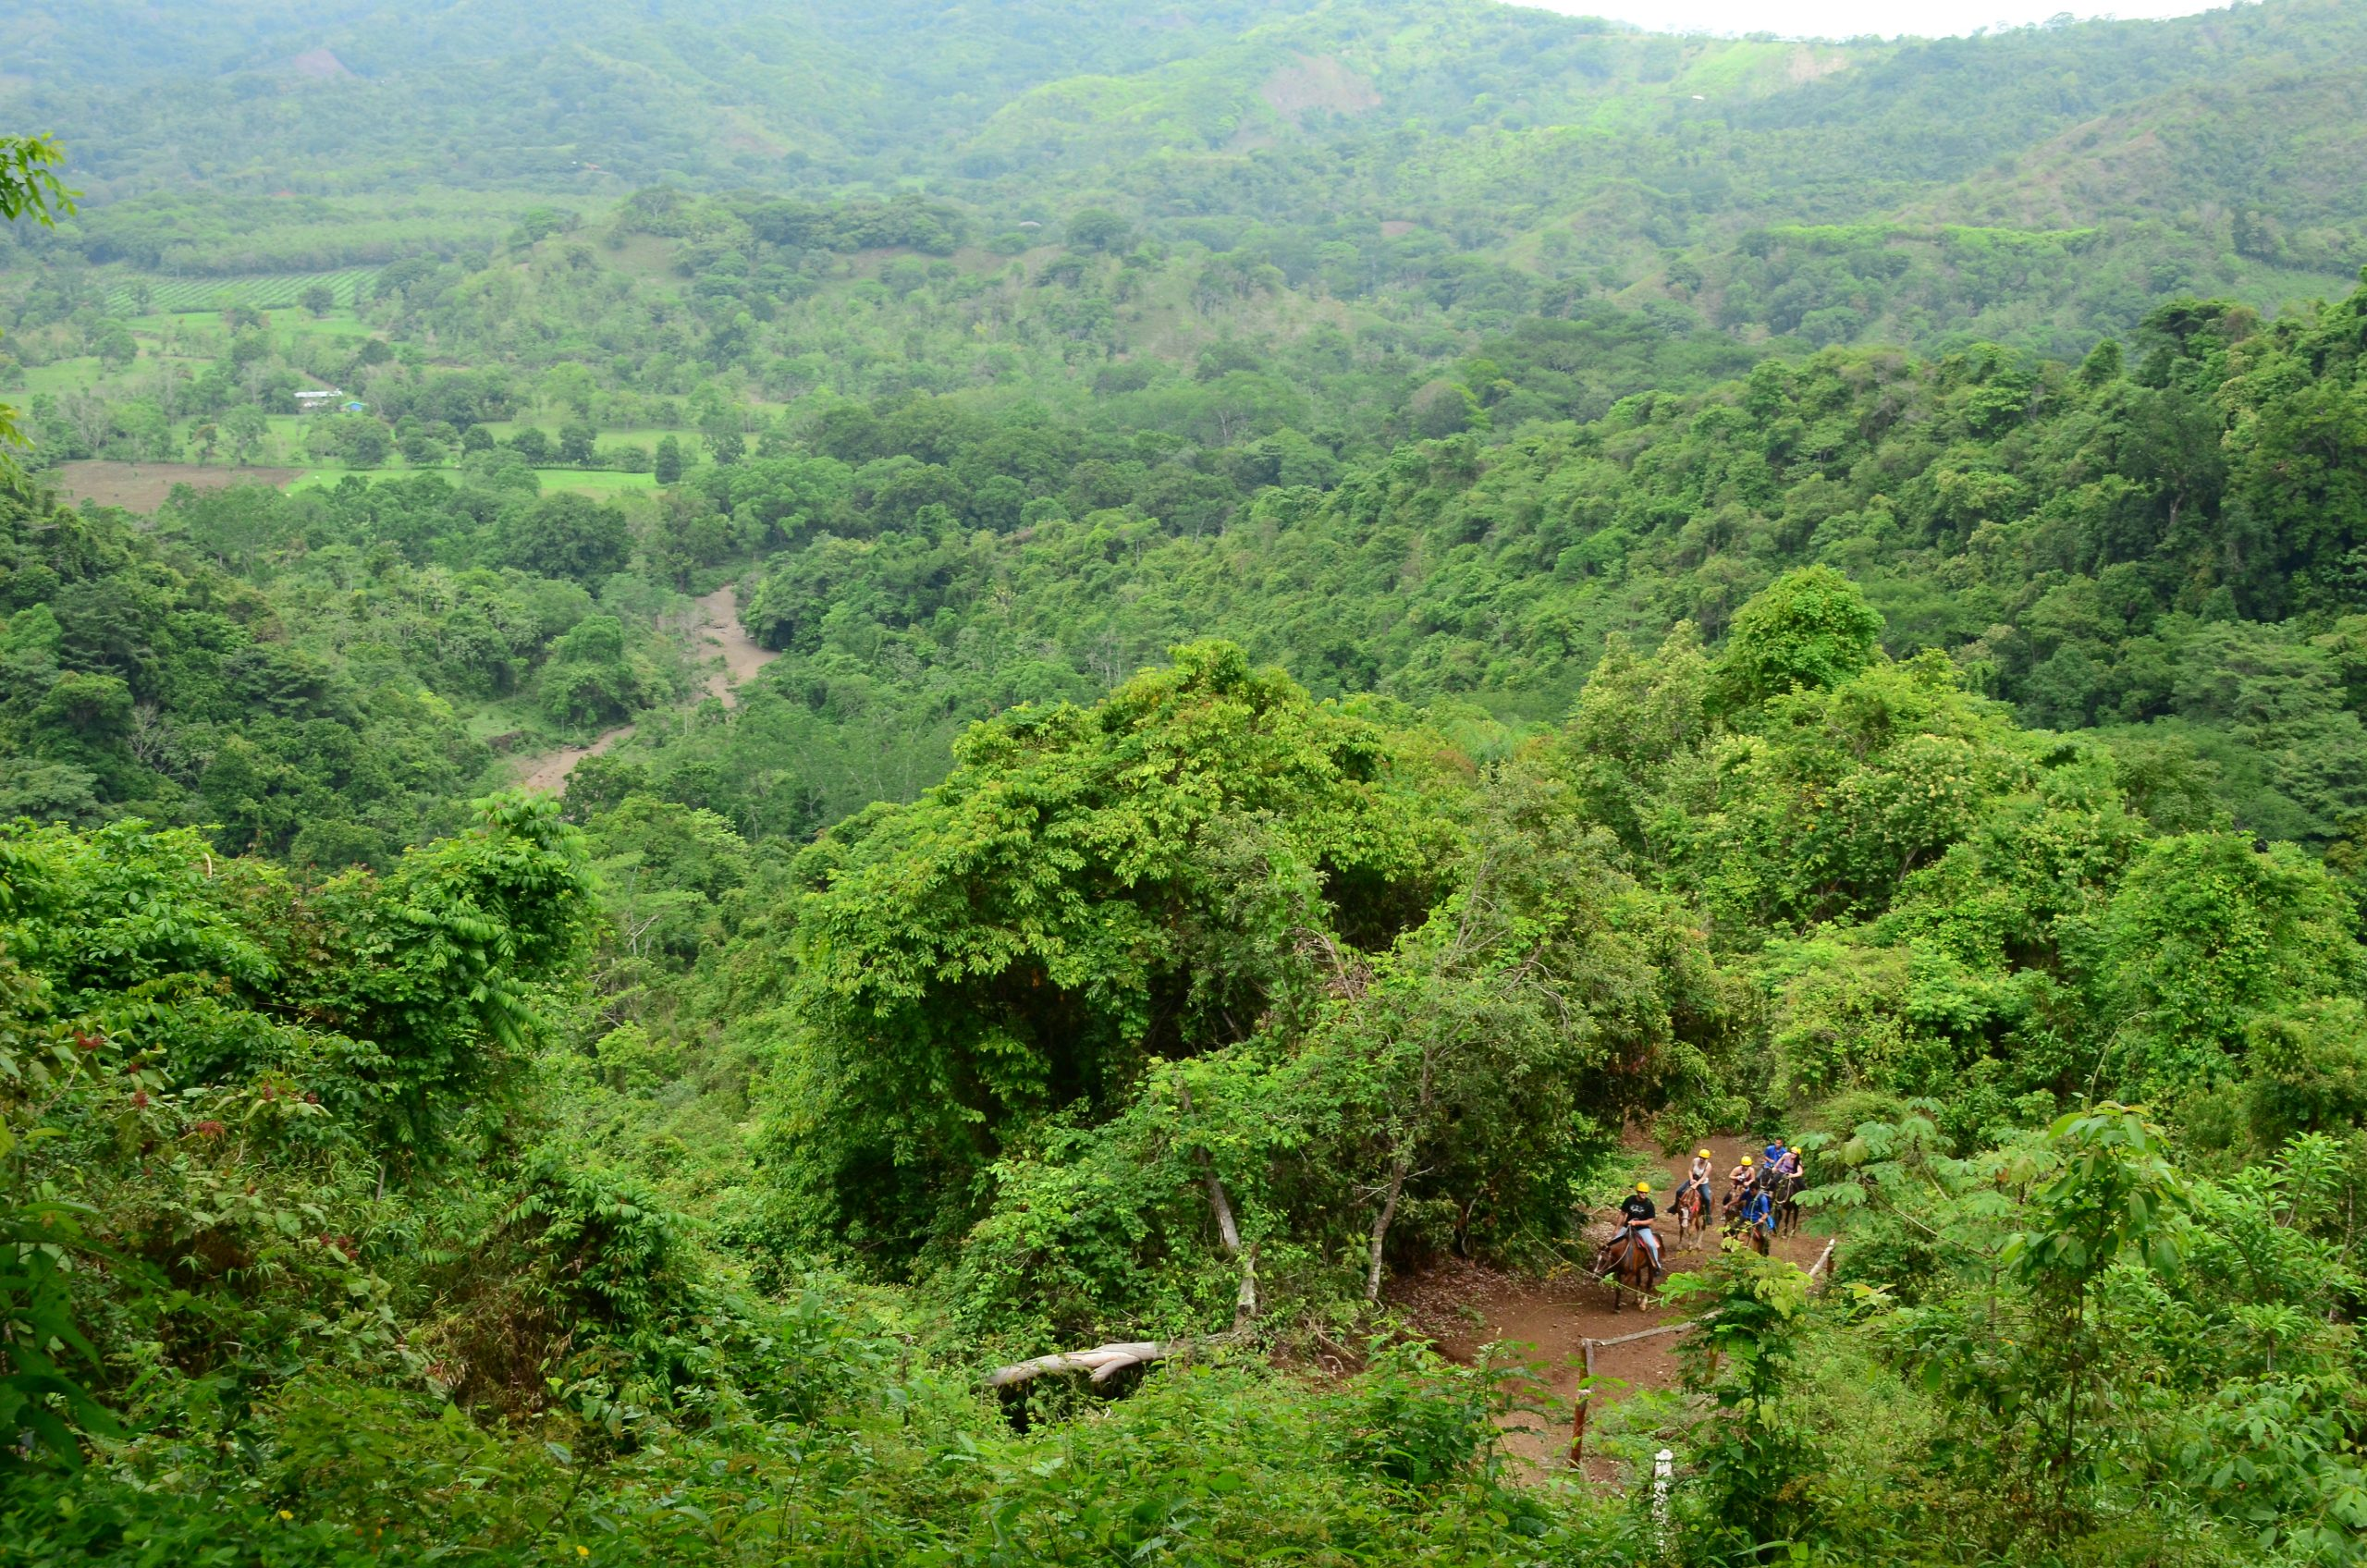 Take A Ride Through Costa Ricans Rainforest During The Full Day Adventure Tour At Vista Los Suenos_36